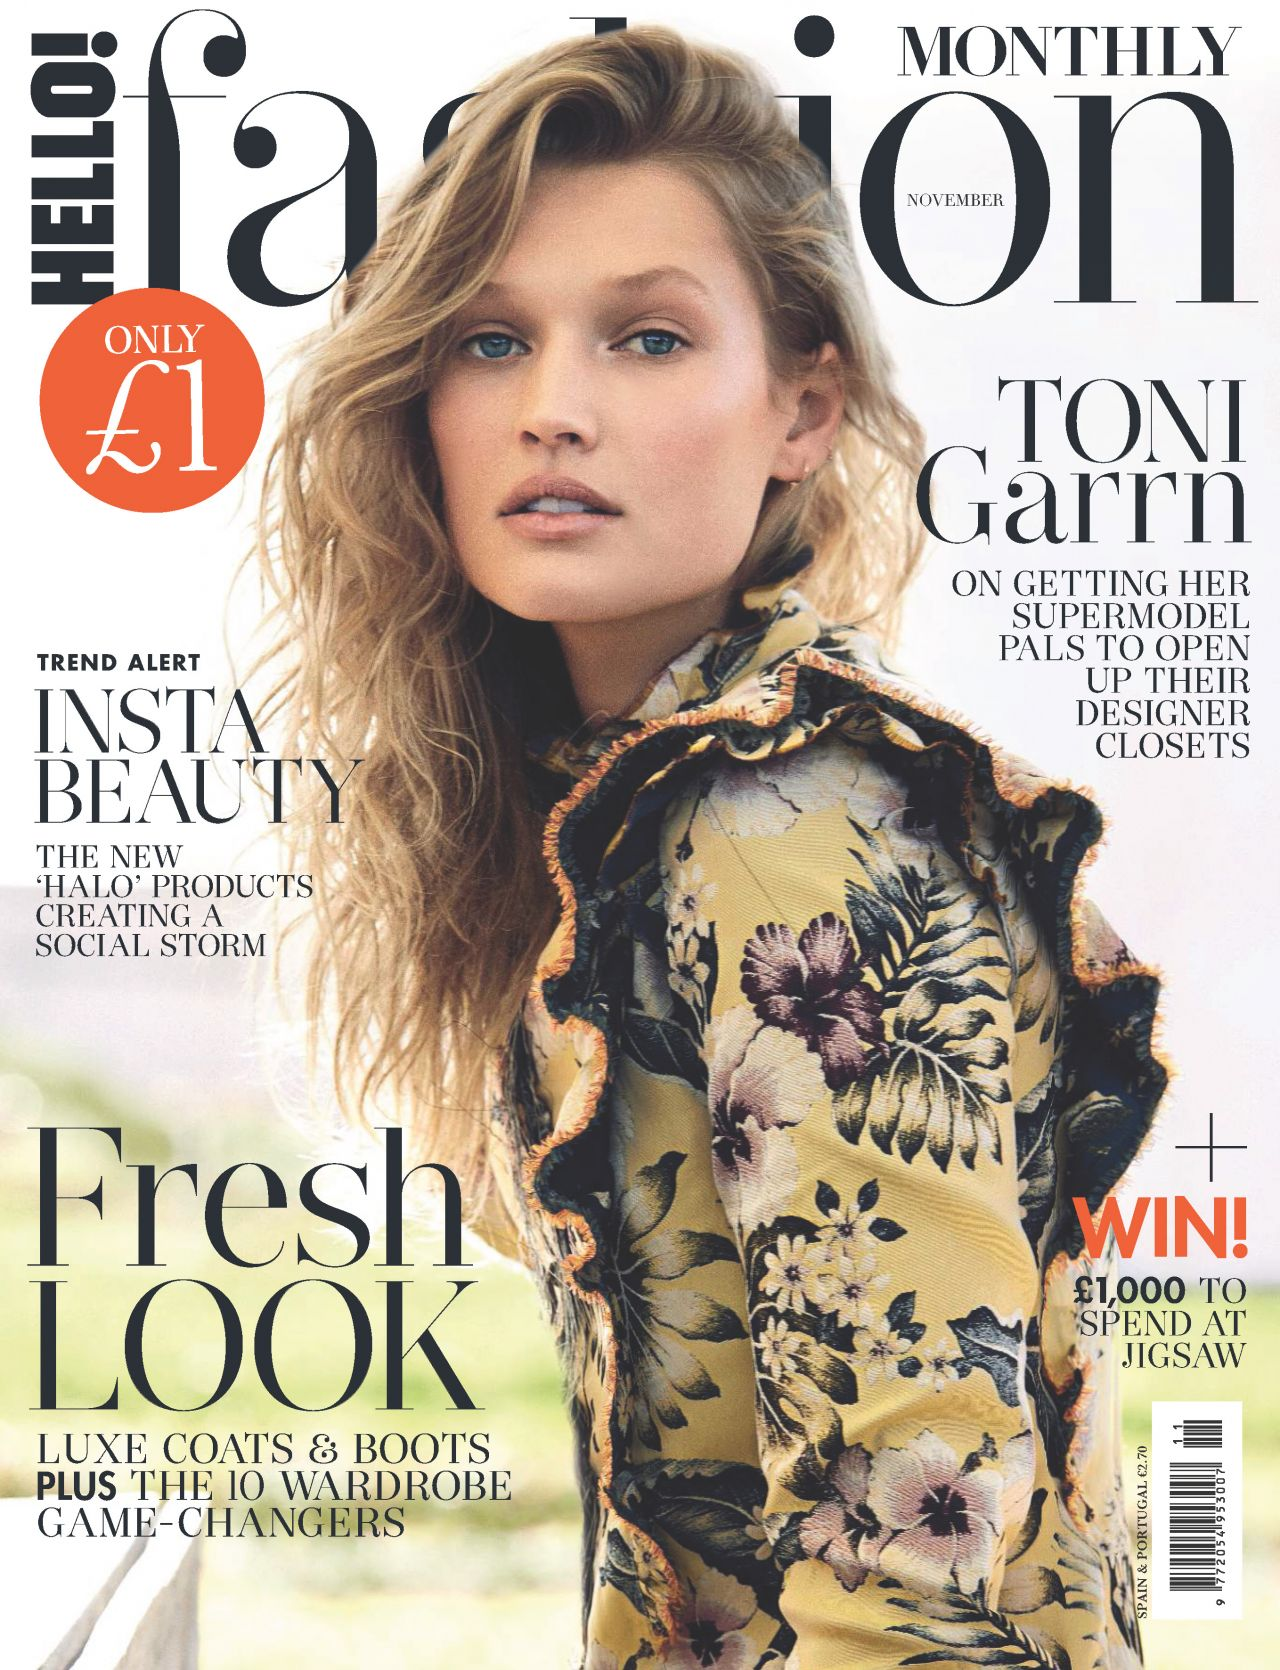 Toni Garrn - Hello Fashion Monthly November 2017 Issue